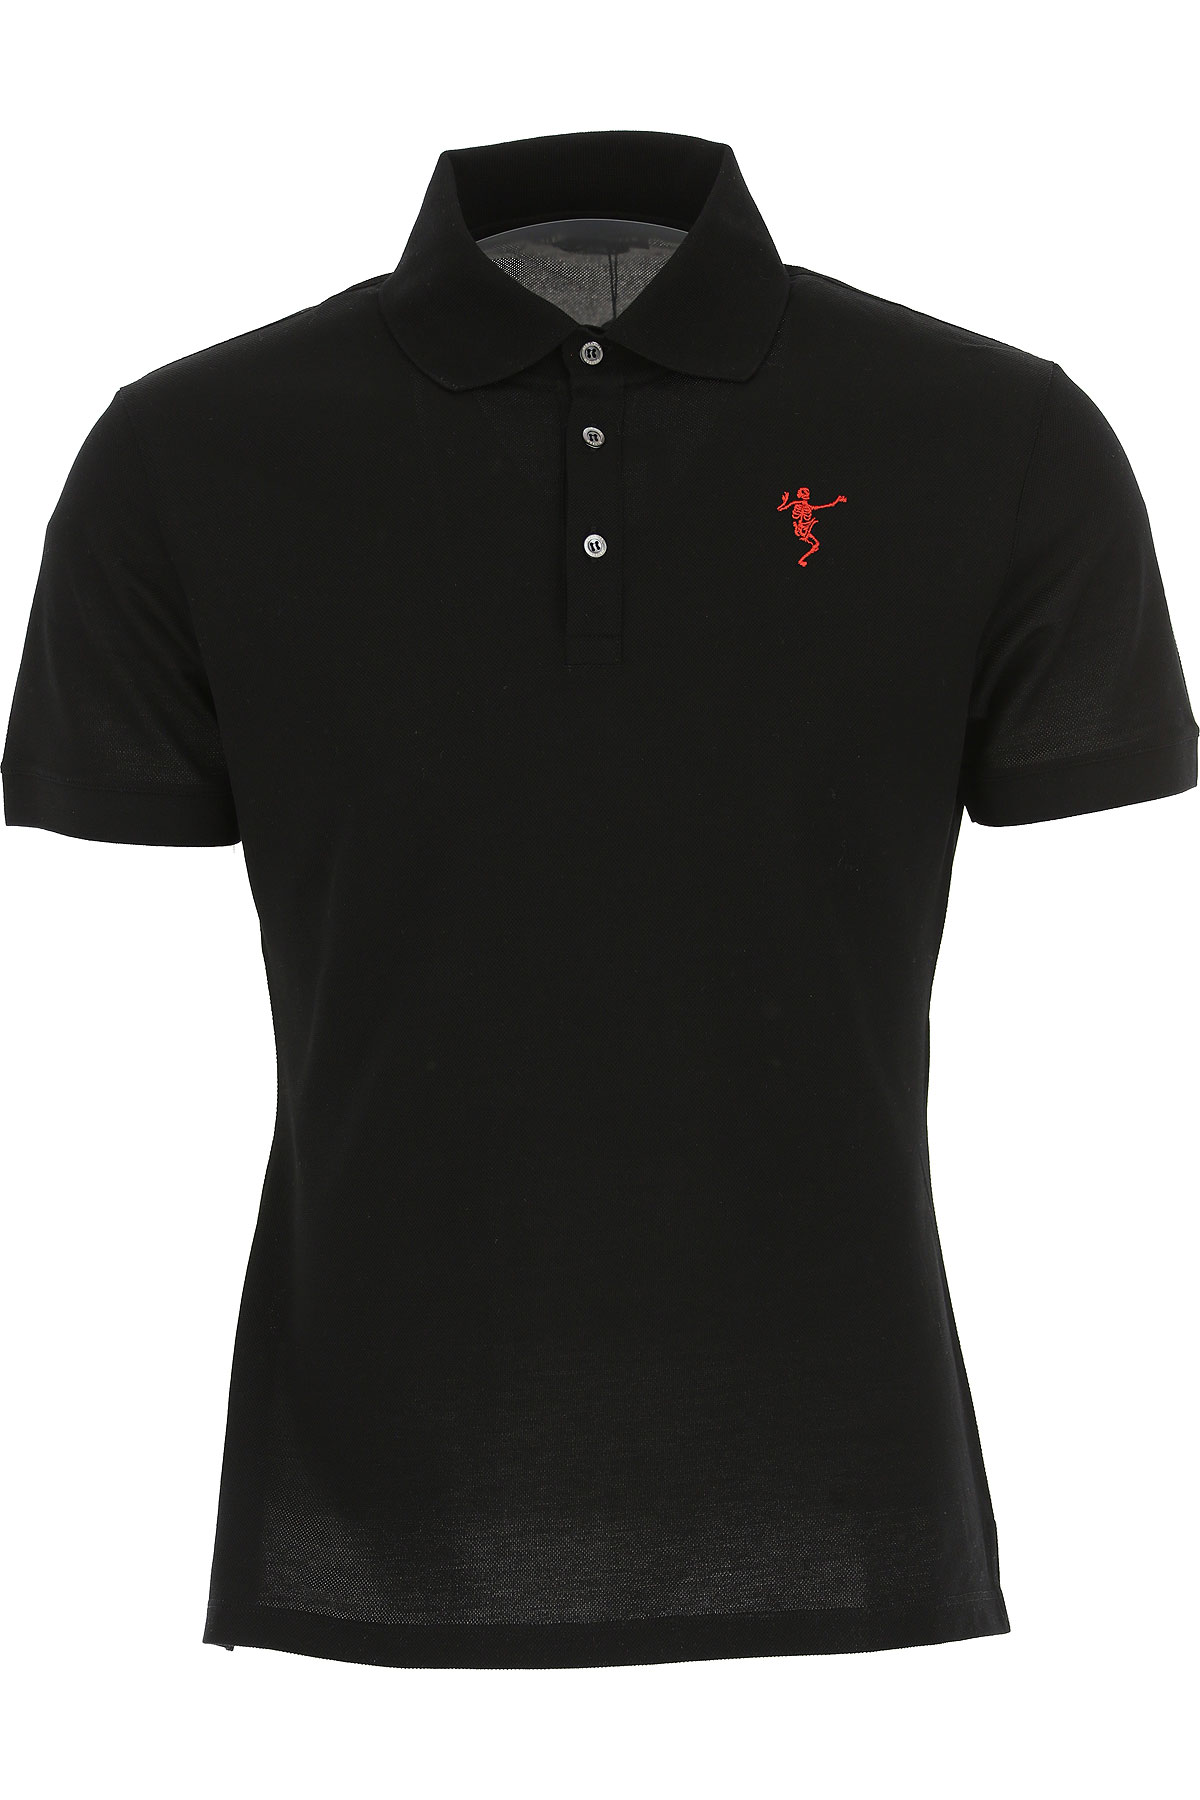 Image of Alexander McQueen Polo Shirt for Men, Black, Cotton, 2017, M S XS